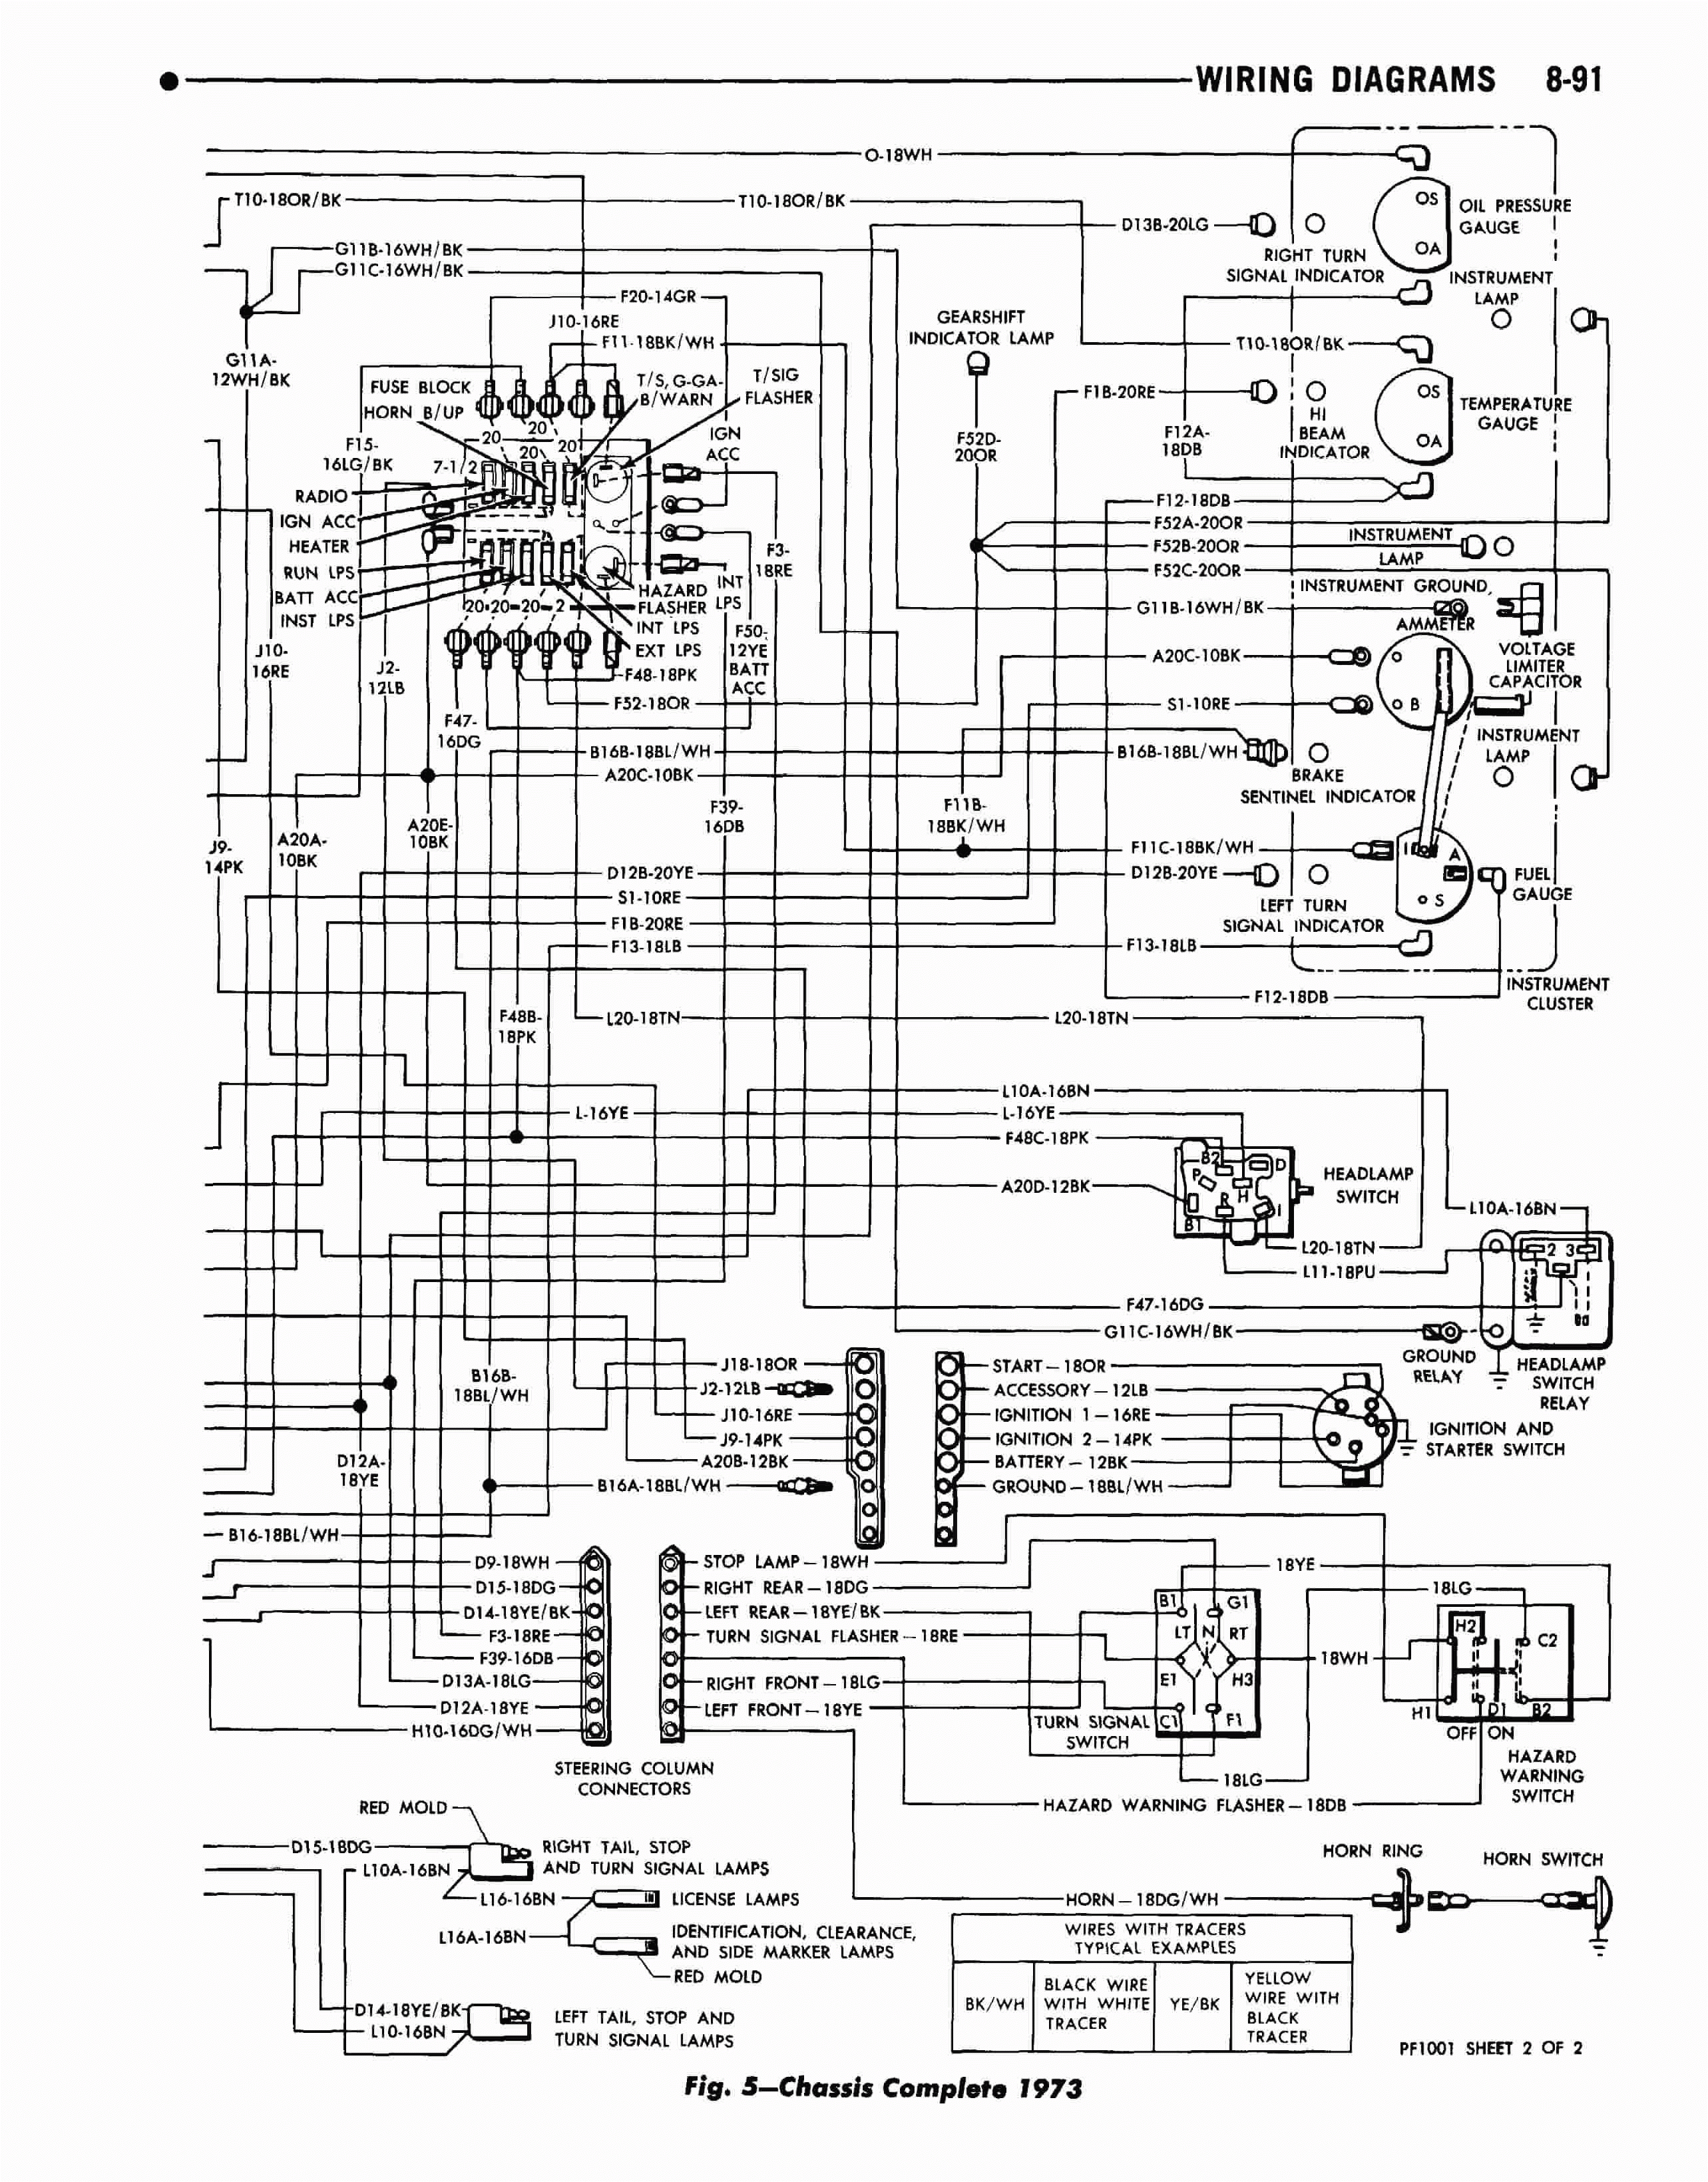 1999 fleetwood bounder battery wiring diagram wiring diagram sch 1999 bounder motorhome wiring diagram 1999 bounder wiring diagram